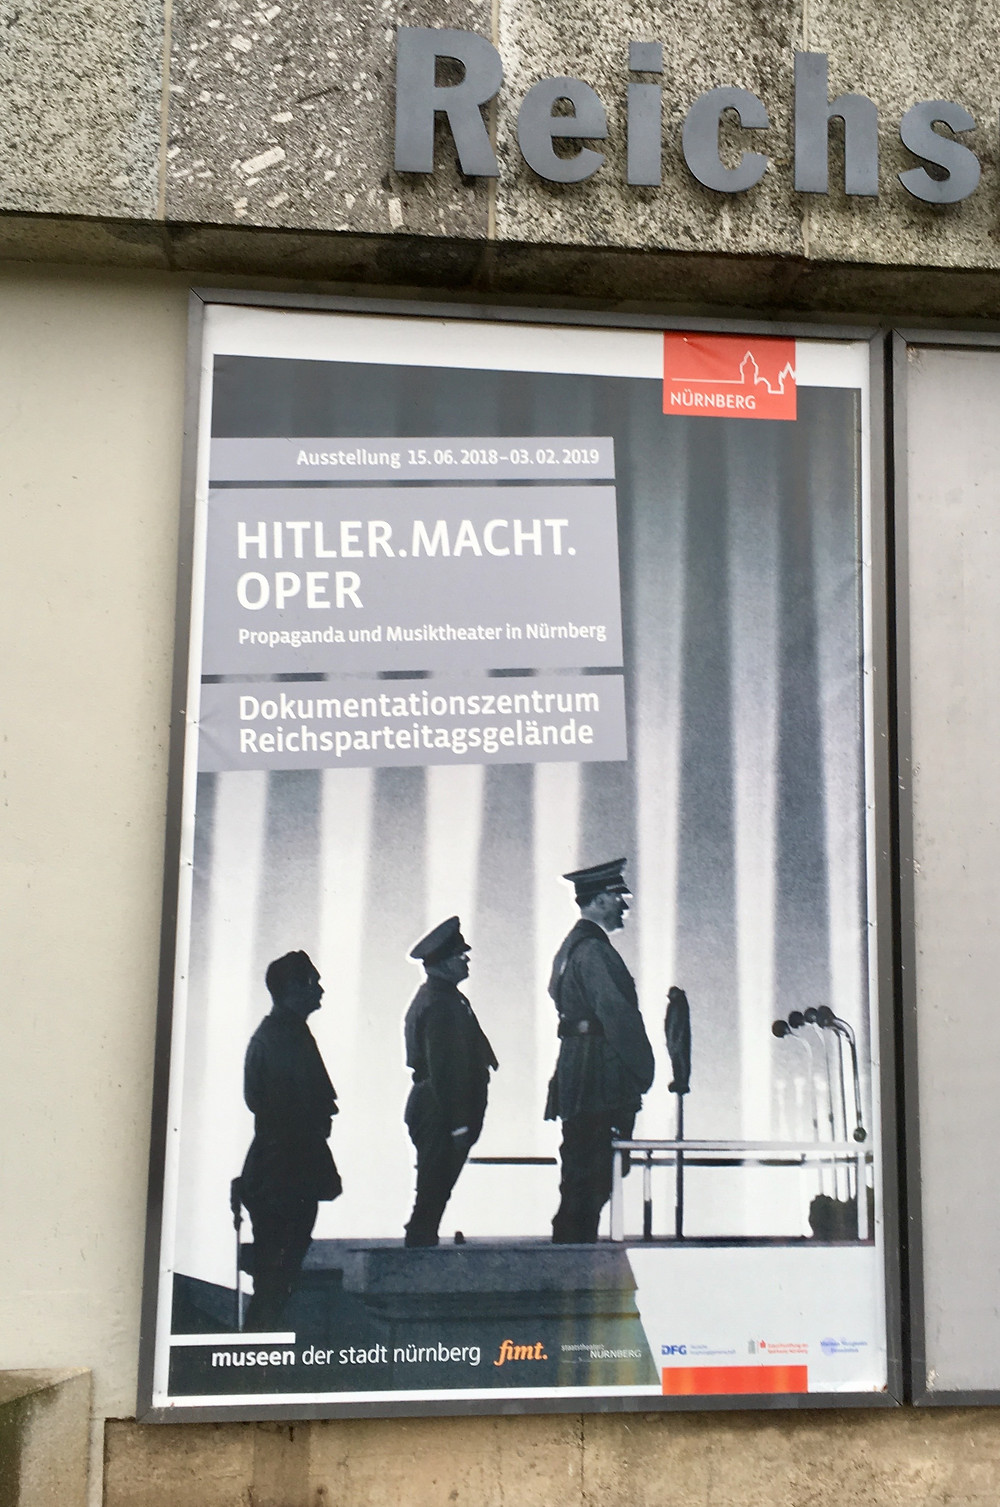 Exhibit at the Nuremberg Museum